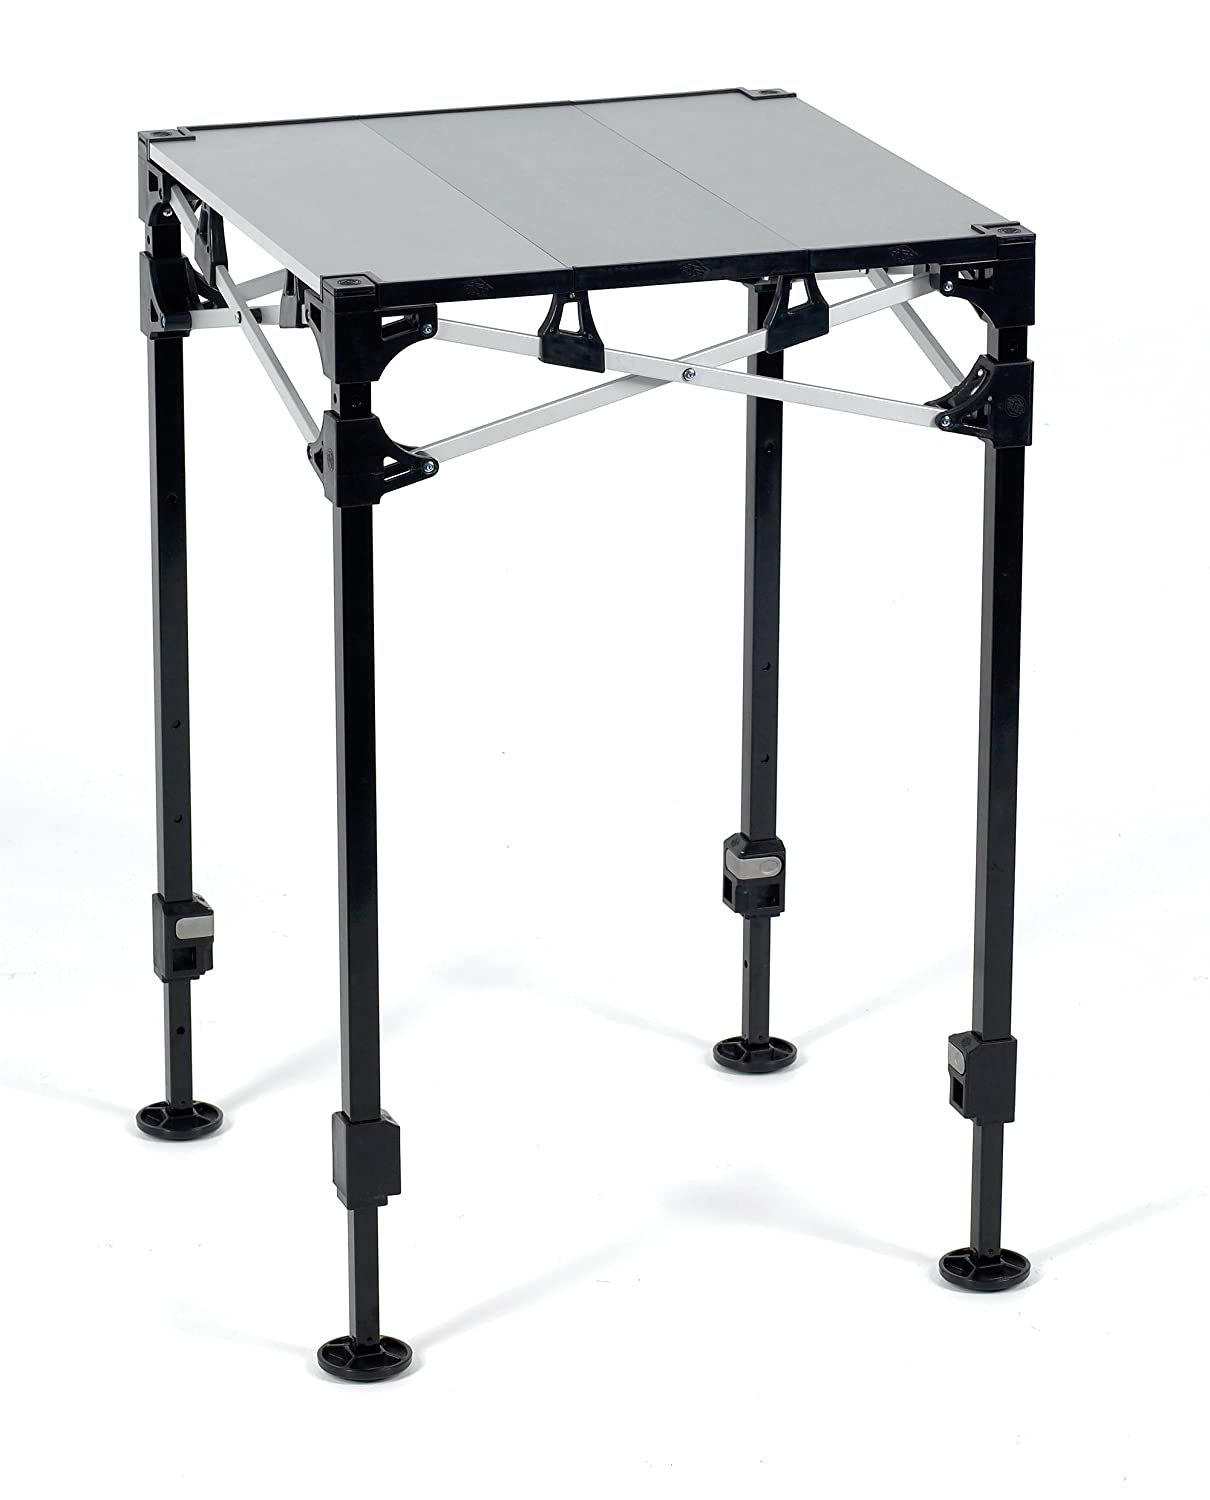 E-Z UP Instant Table System, 2 by 2